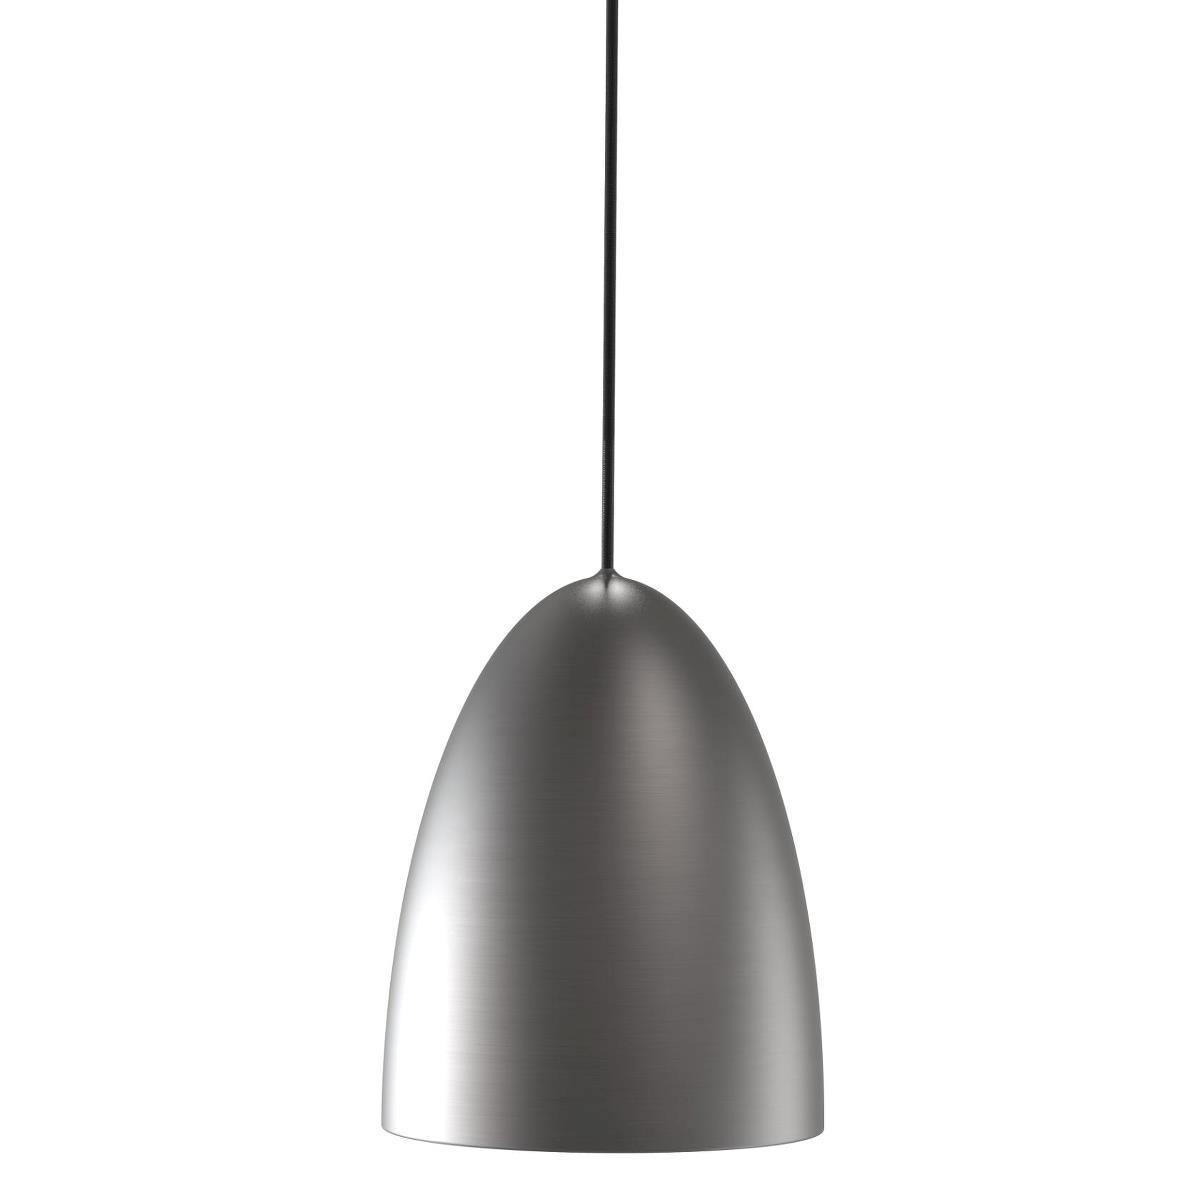 Brushed Steel Single Pendant With Cut Plastic Diffuser - ID 5086